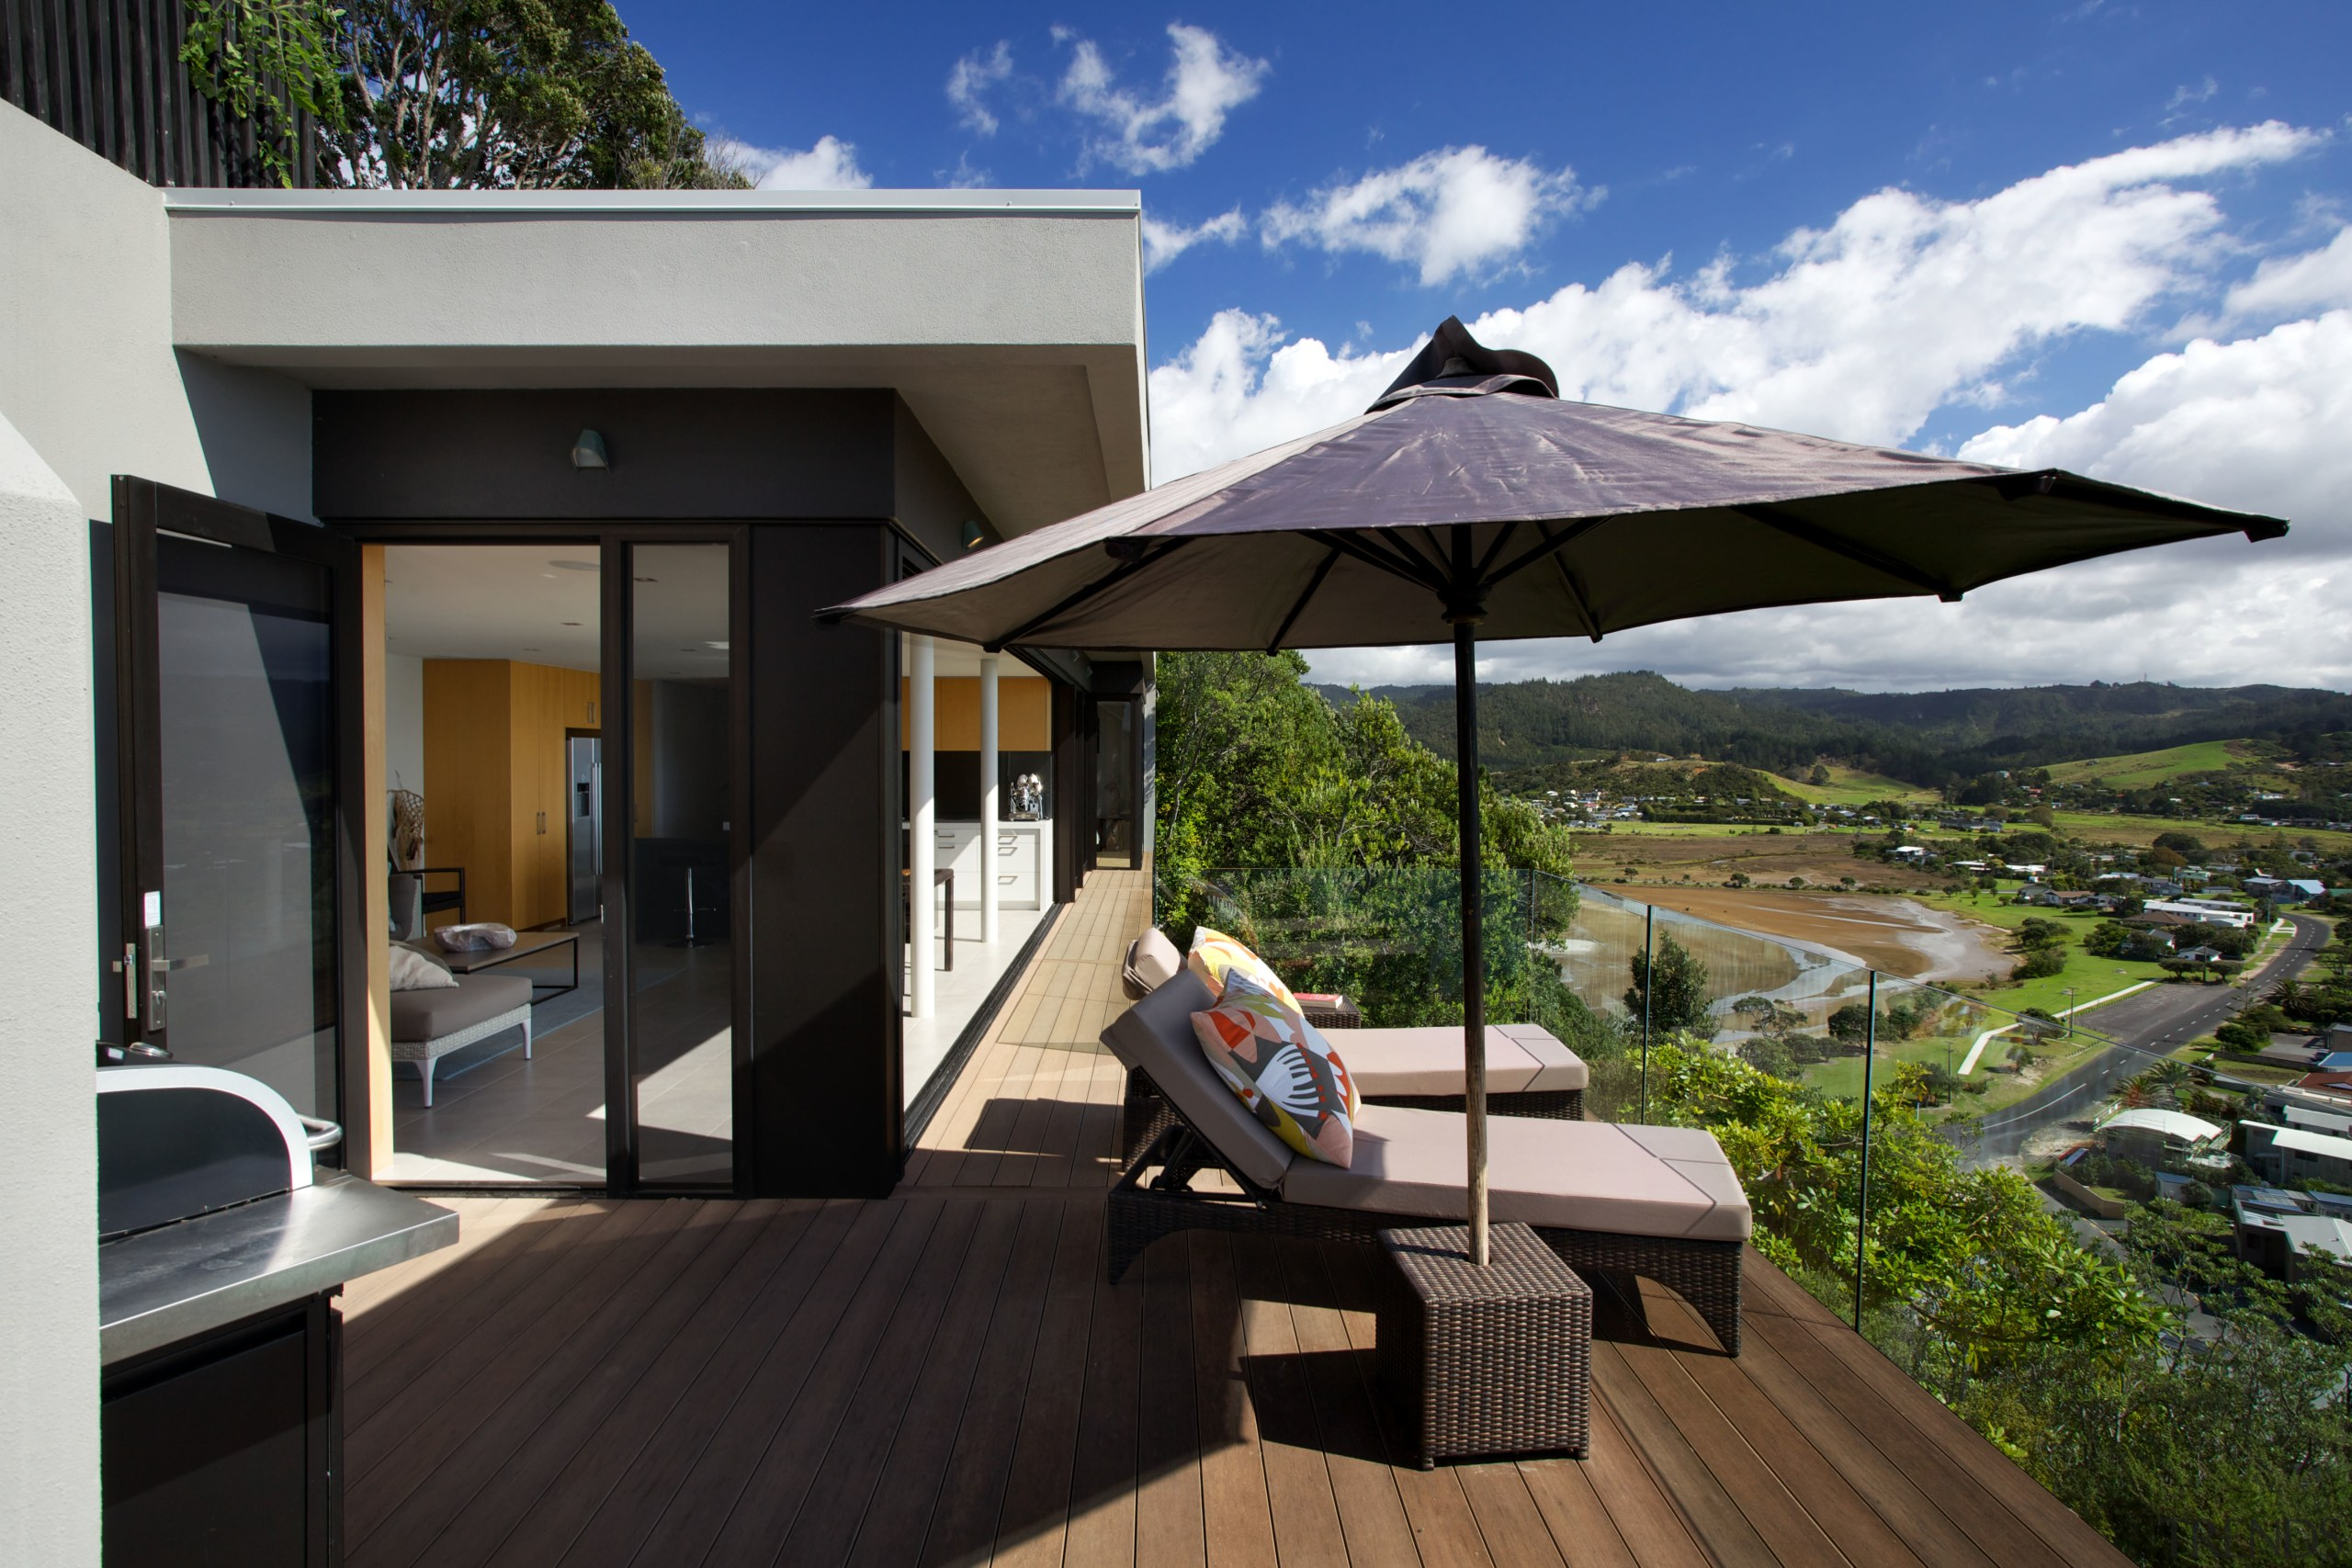 In this new holiday home a glass wall deck, estate, home, house, outdoor structure, property, real estate, resort, roof, shade, black